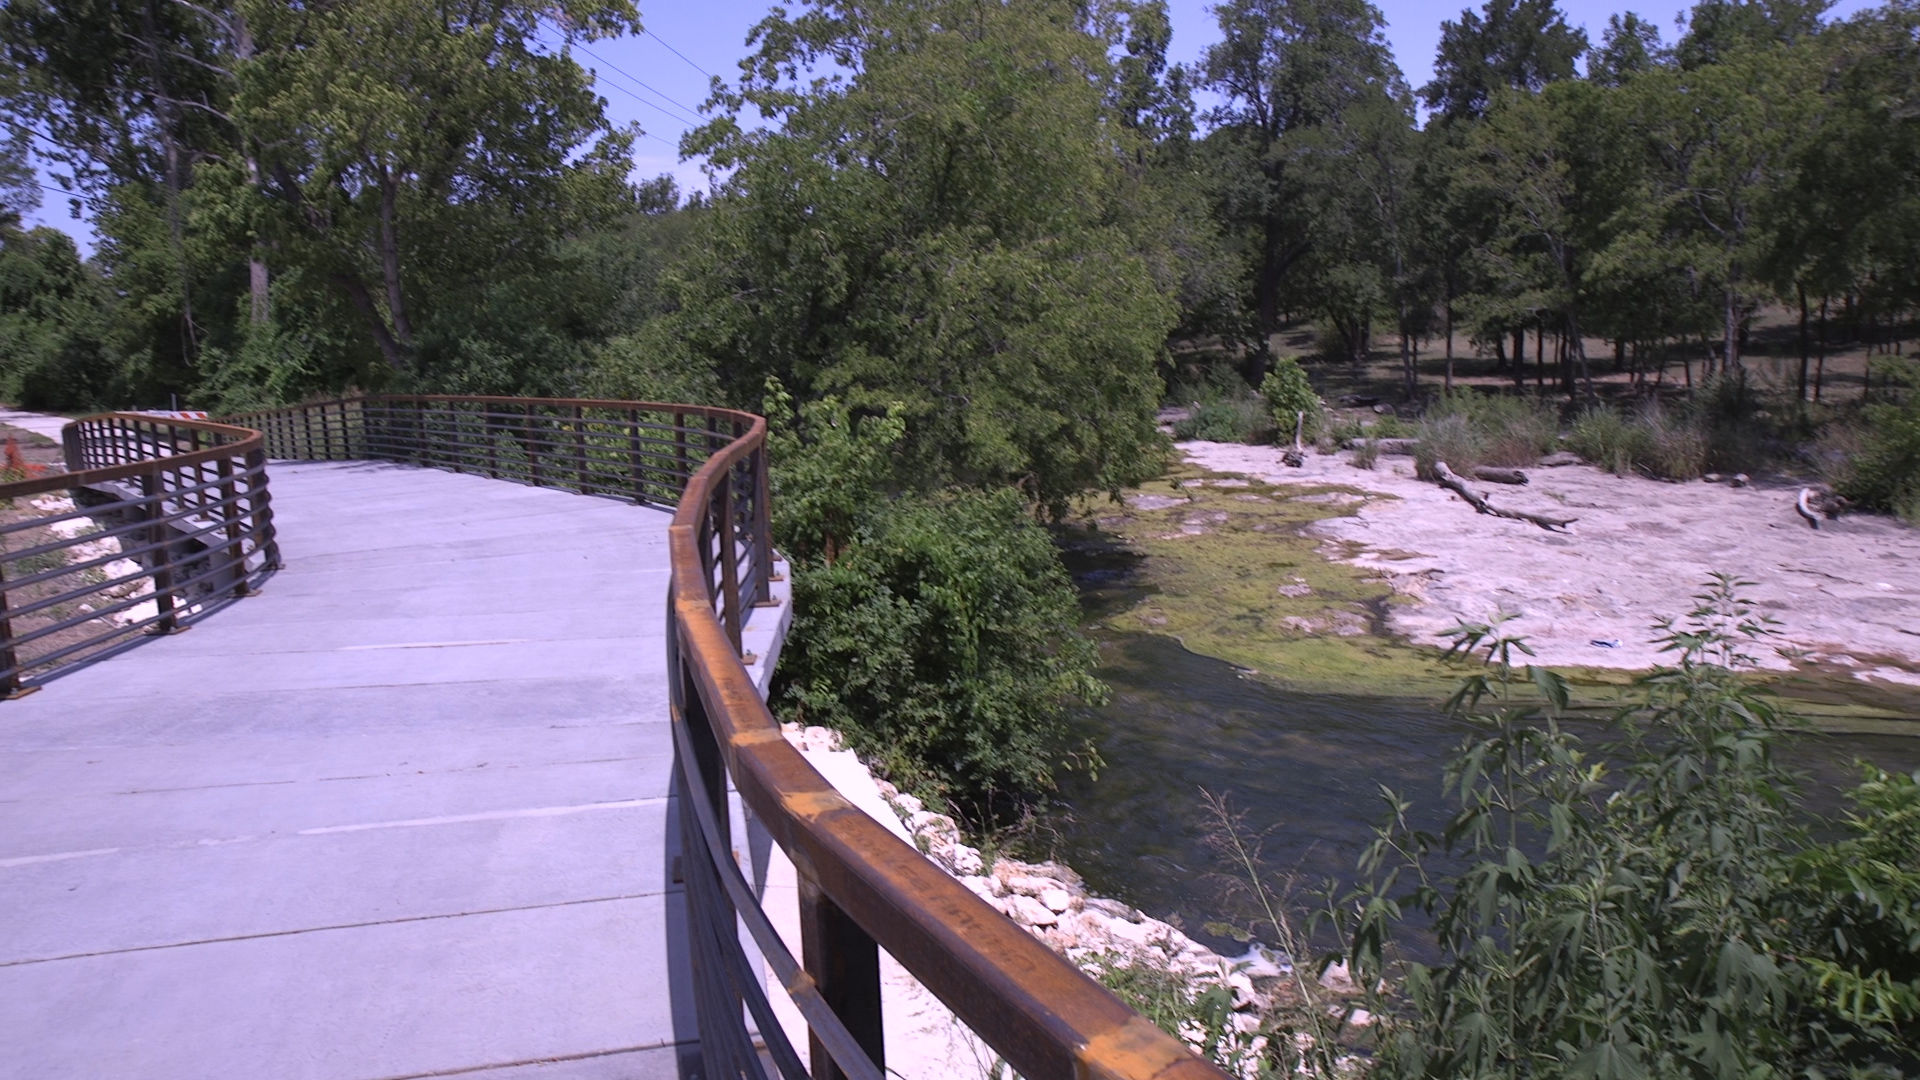 Another section of the new Brushy Creek Trail over Brushy Creek as part of Phase V.